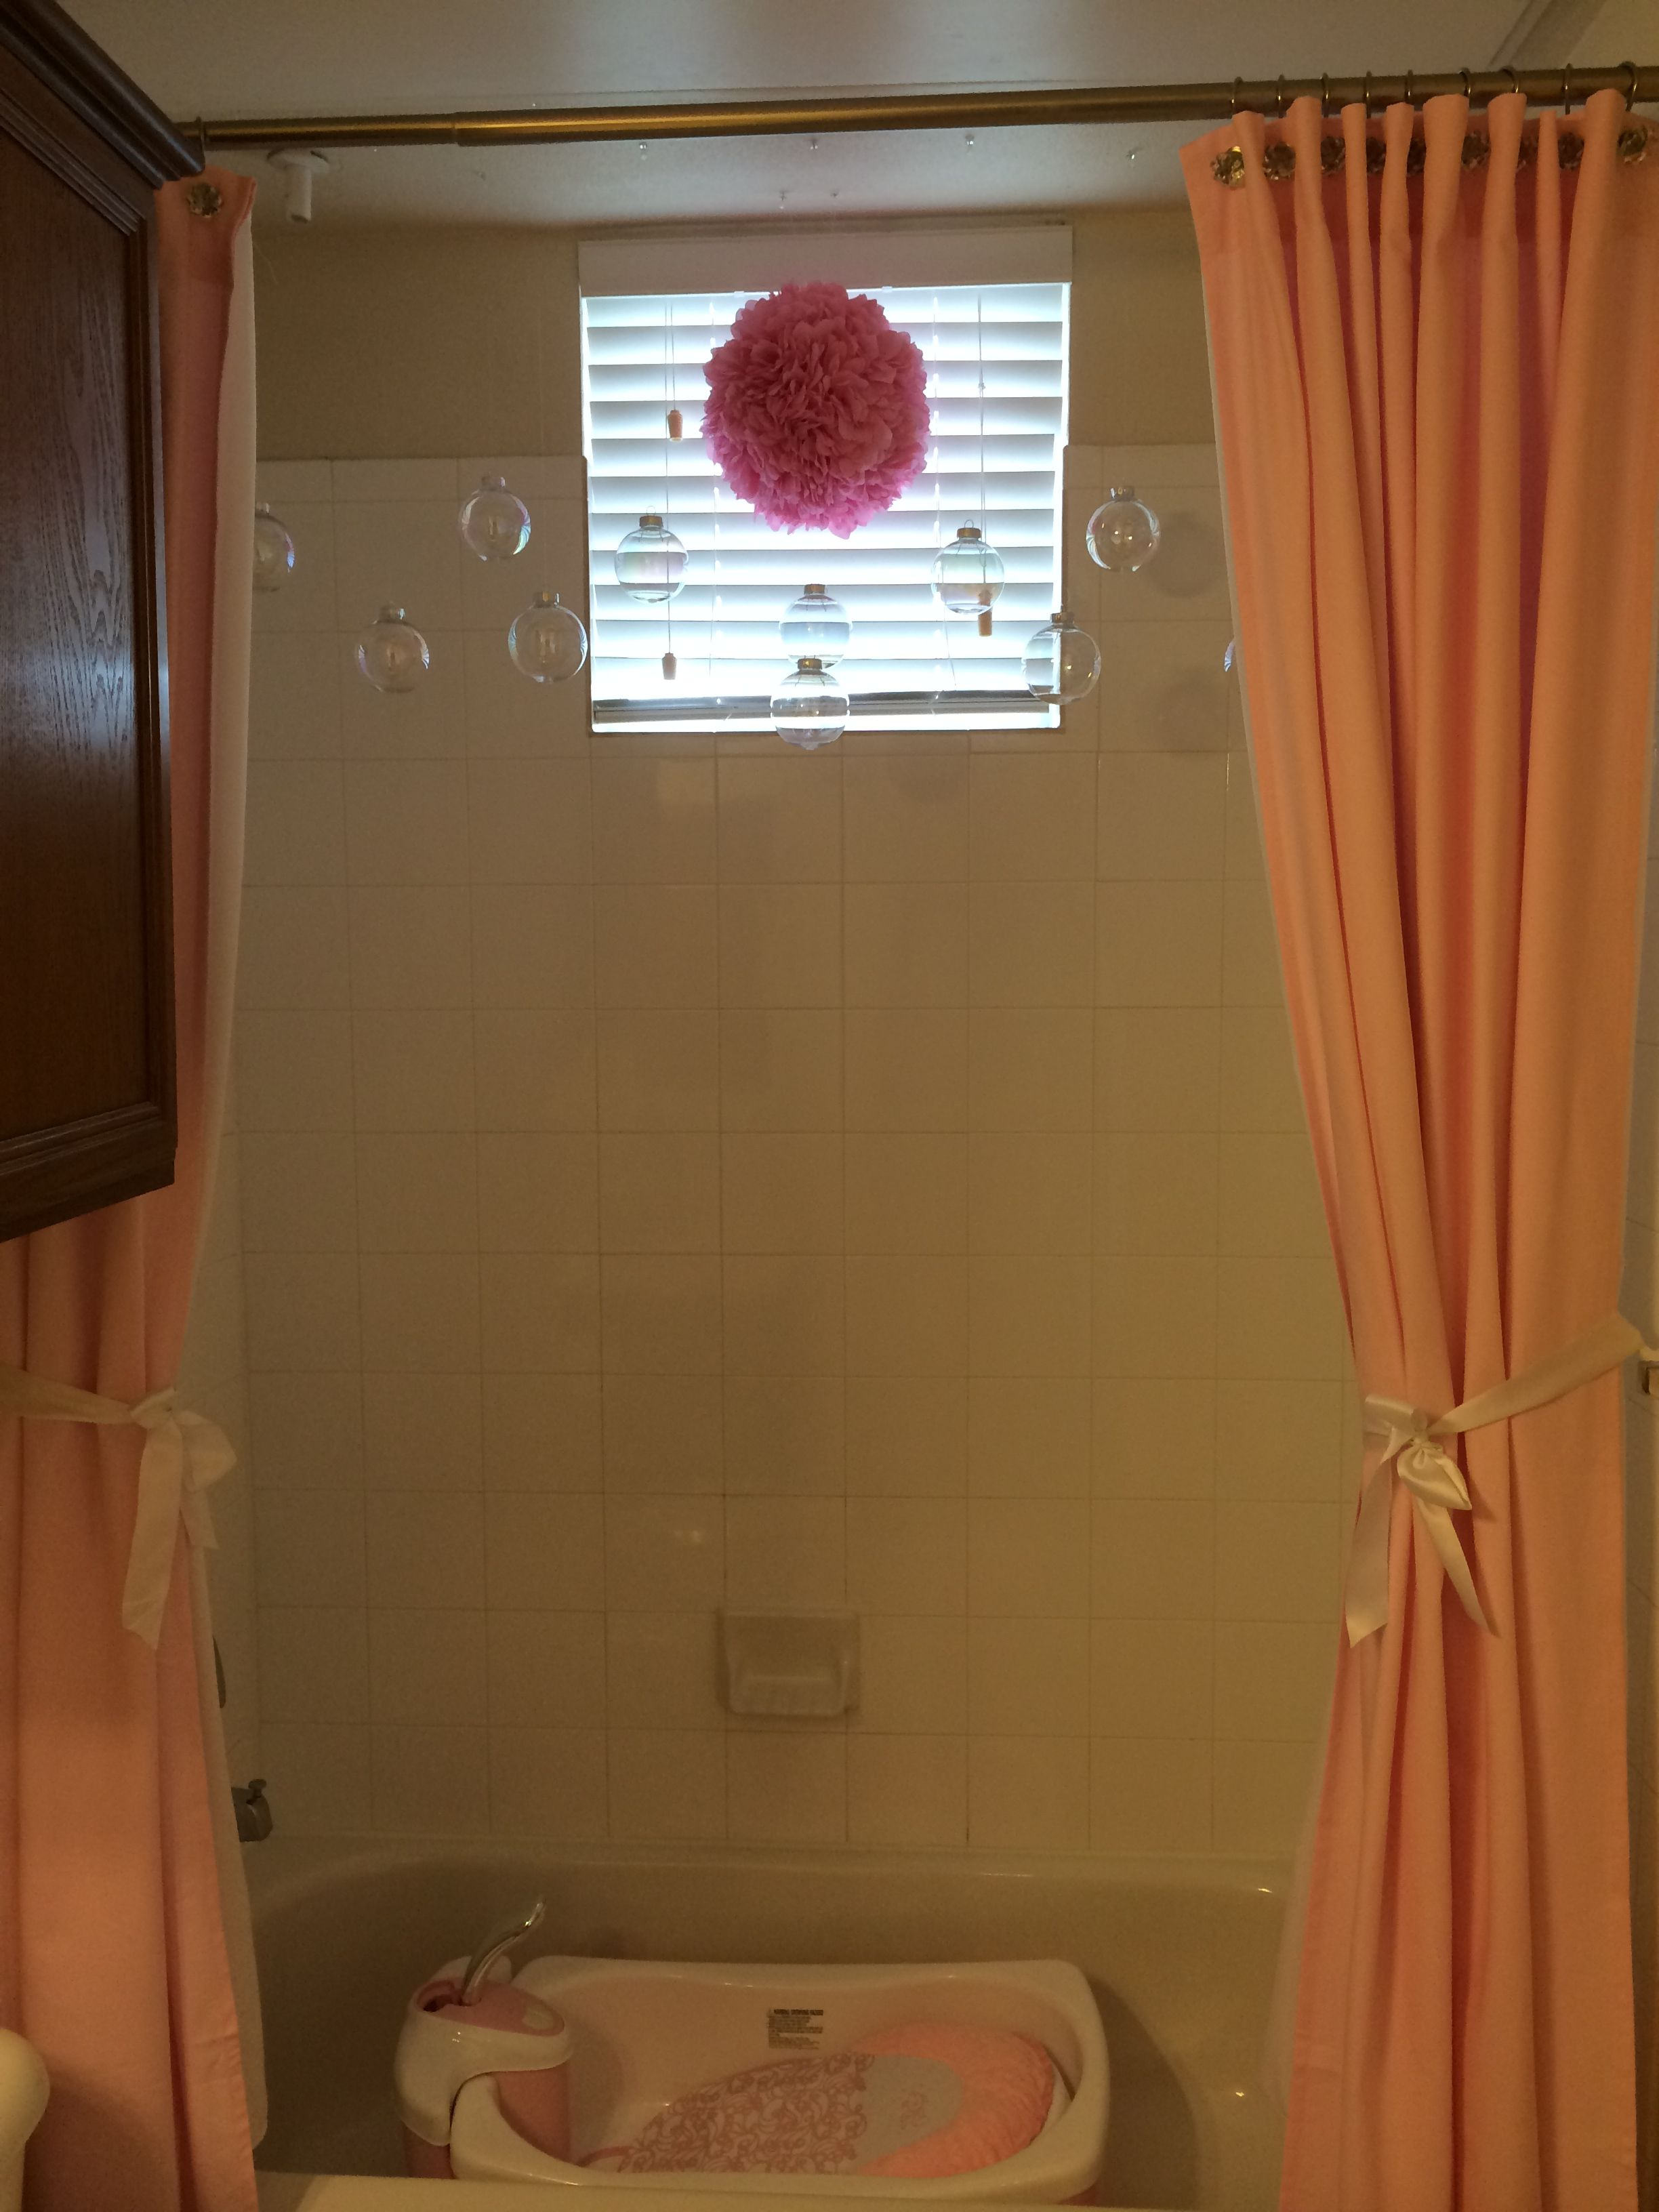 Baby S Bathroom 2 Curtain Panels Grommets Added To Make Into